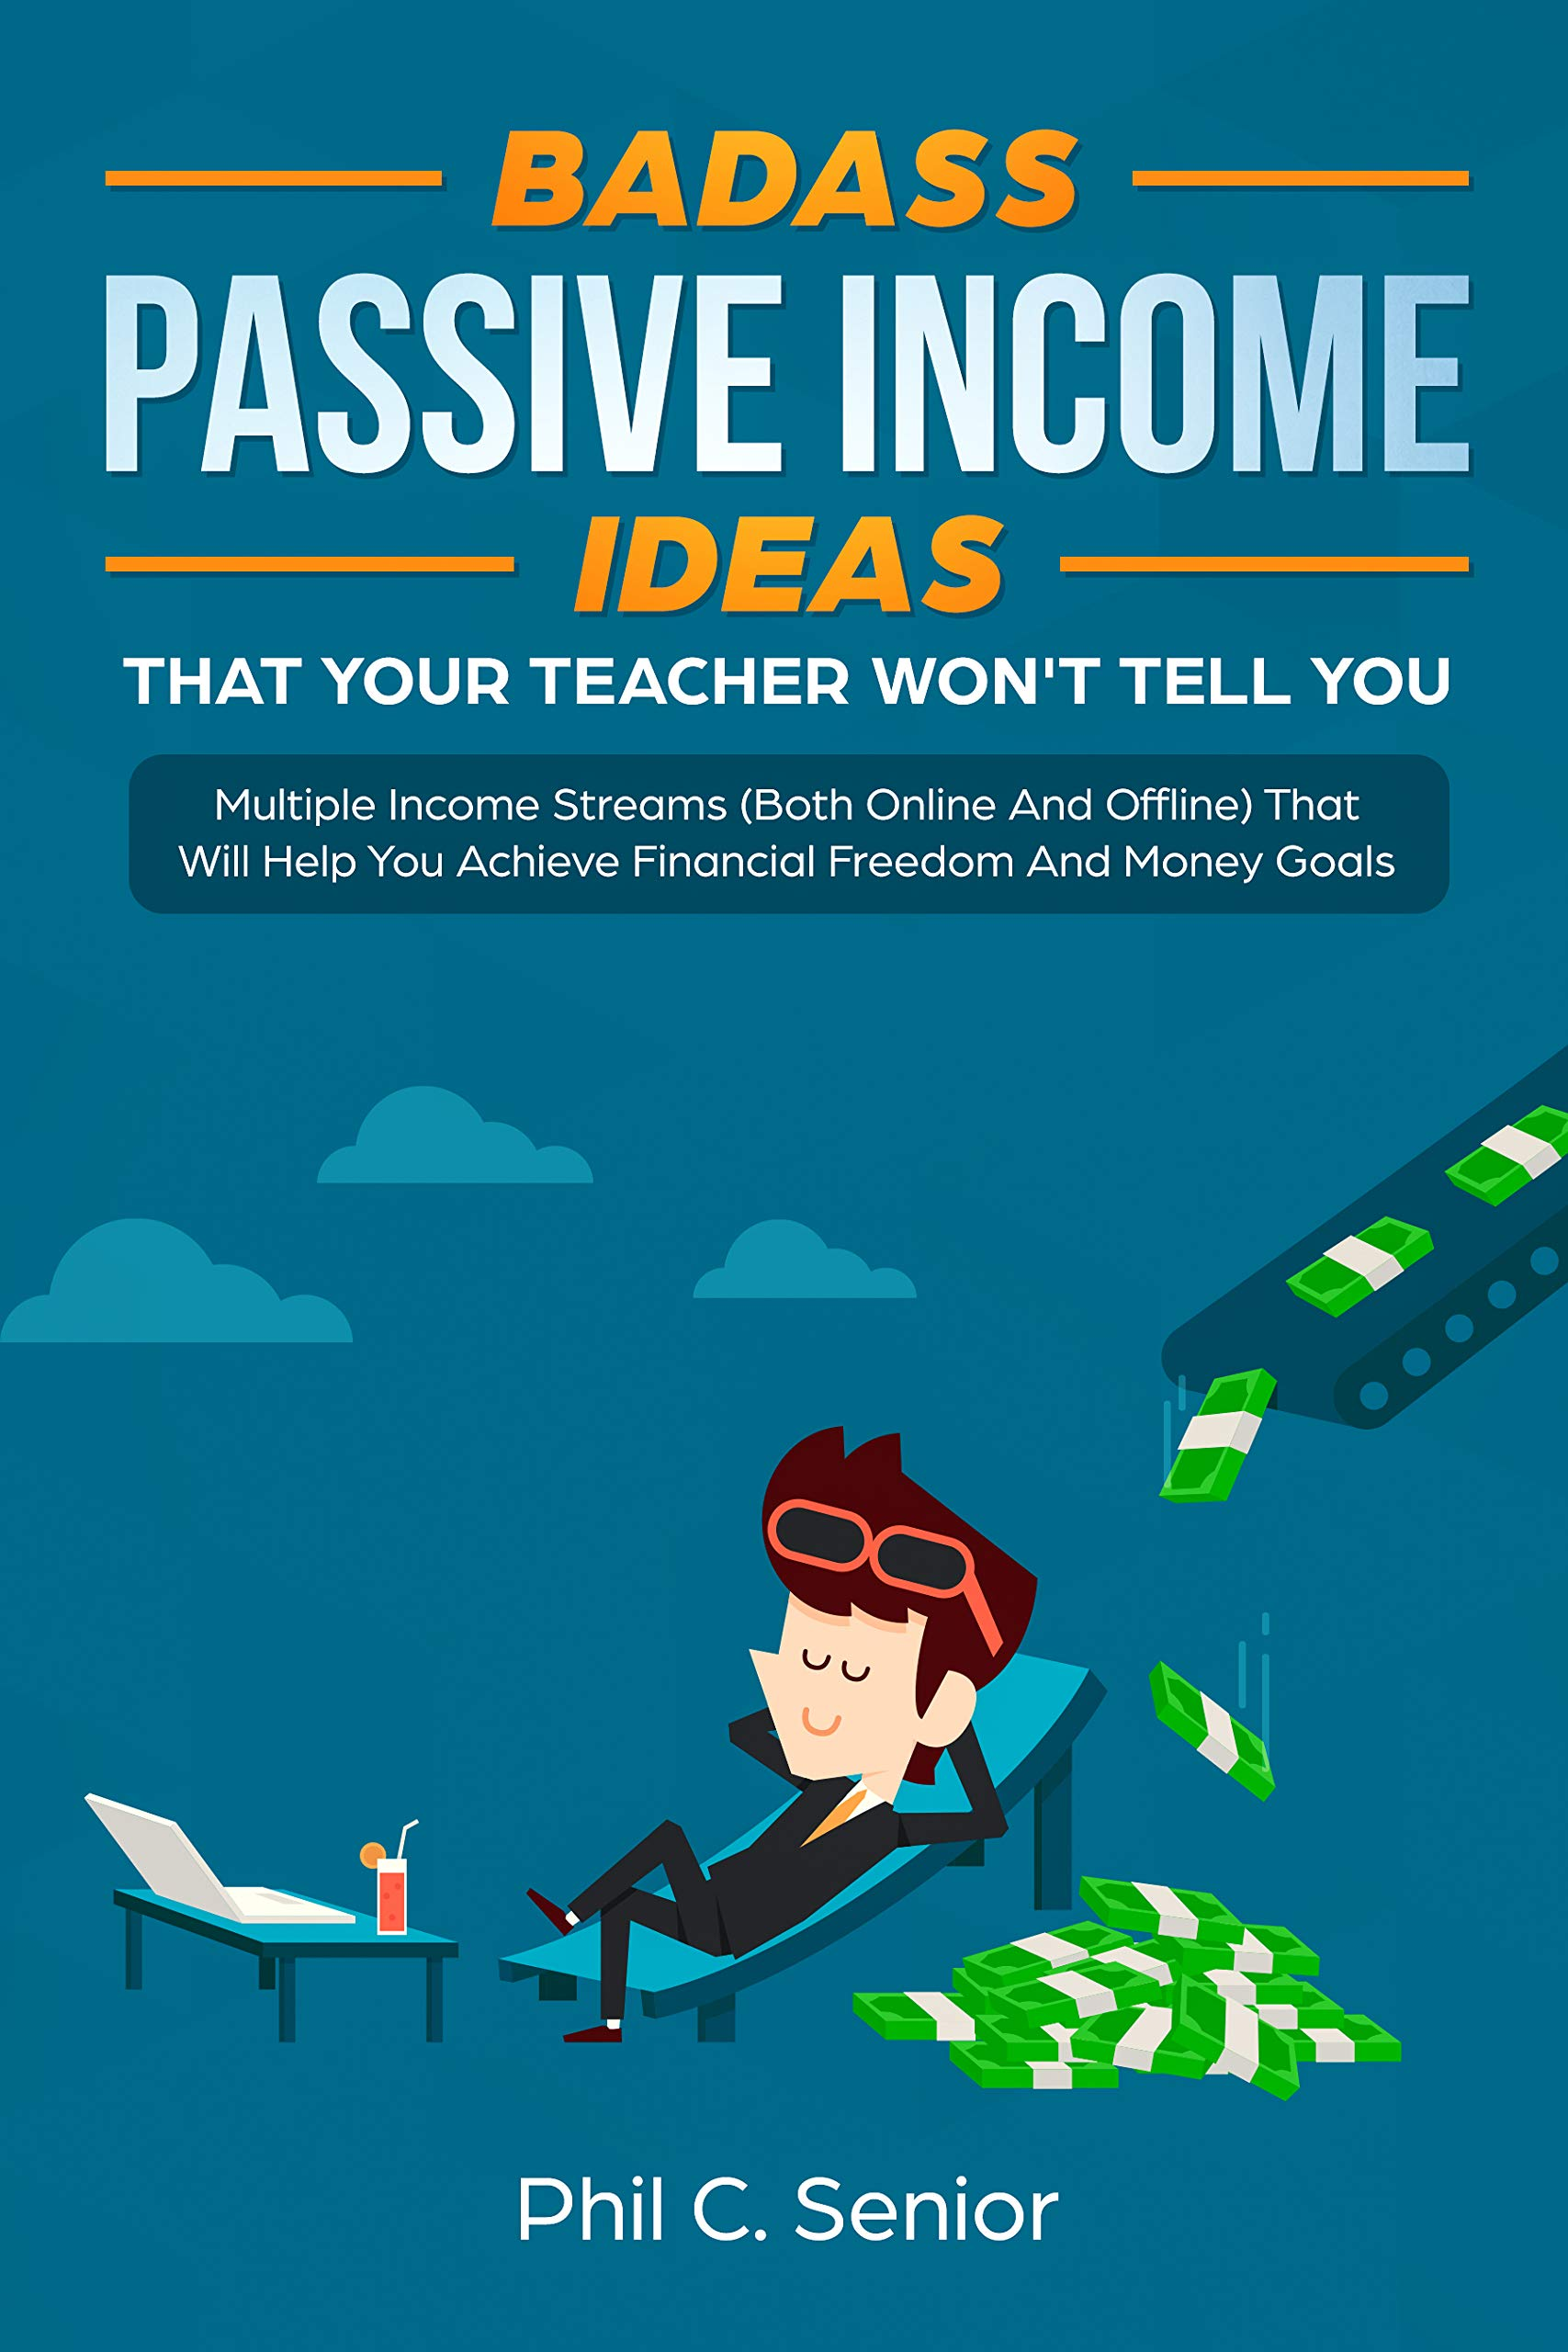 Badass Passive Income Ideas That Your Teacher Won't Tell You: Multiple Income Streams (Both Online And Offline) That Will Help You Achieve Financial Freedom And Money Goals